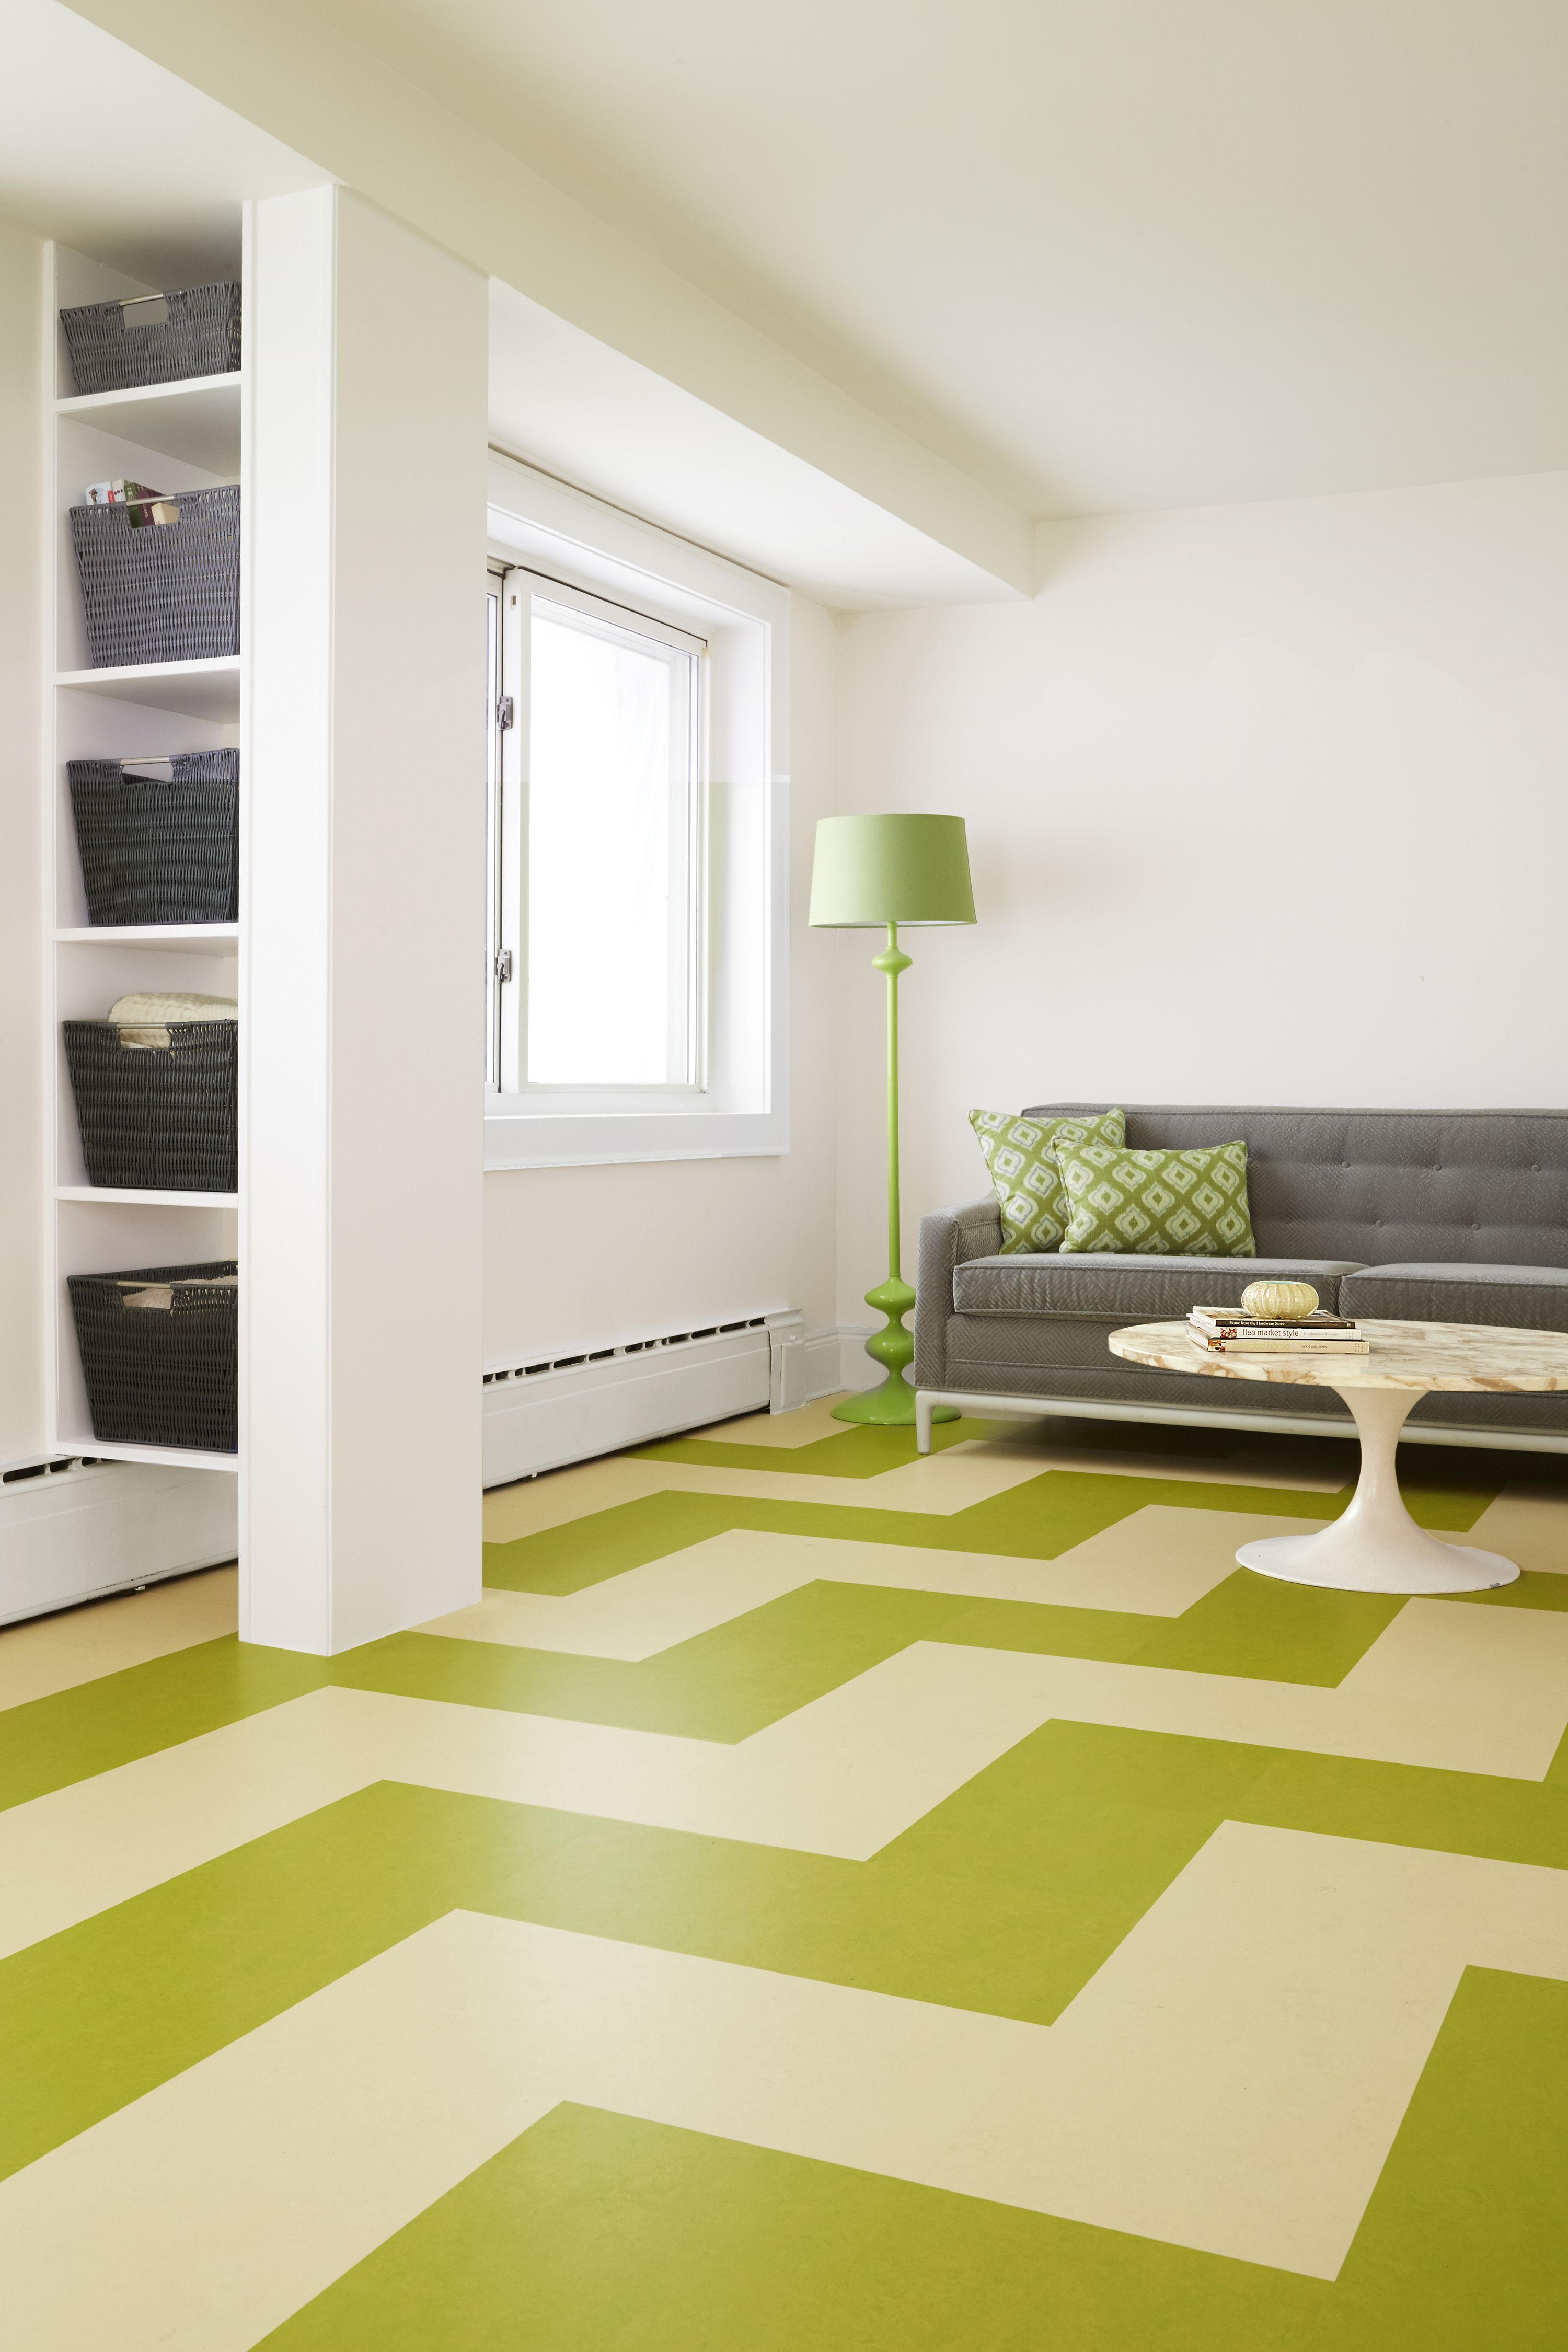 Use Click Together Marmoleum Squares To Lay A Floating Floor In An Endless Array Of Colorful Patterns